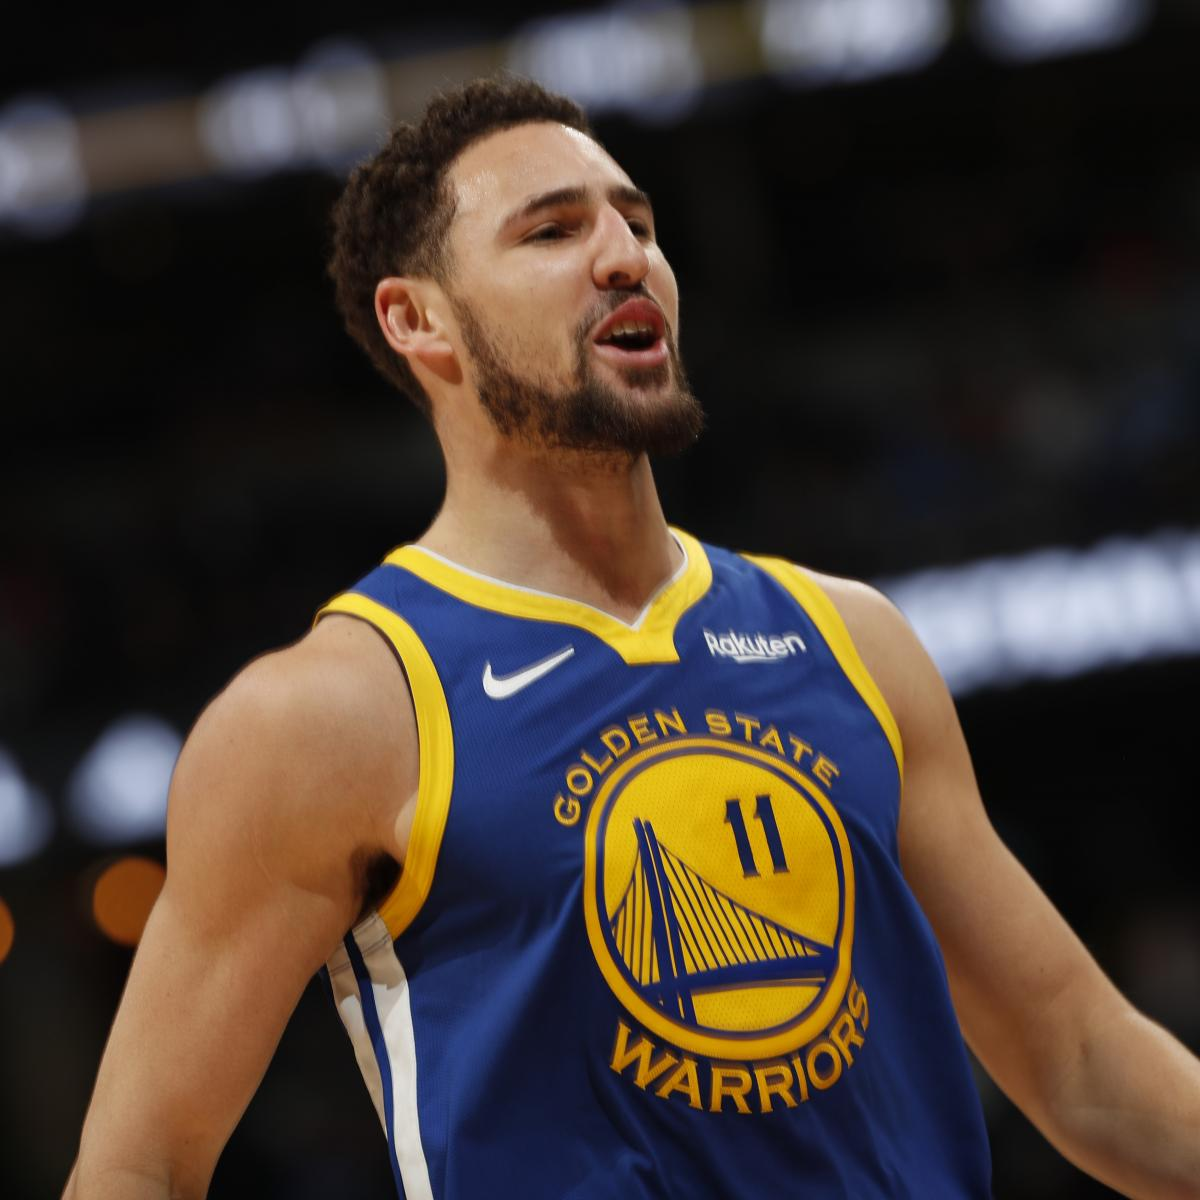 Rockets Vs Warriors Head To Head This Season: Warriors' Klay Thompson To Play In Game 1 Vs. Rockets